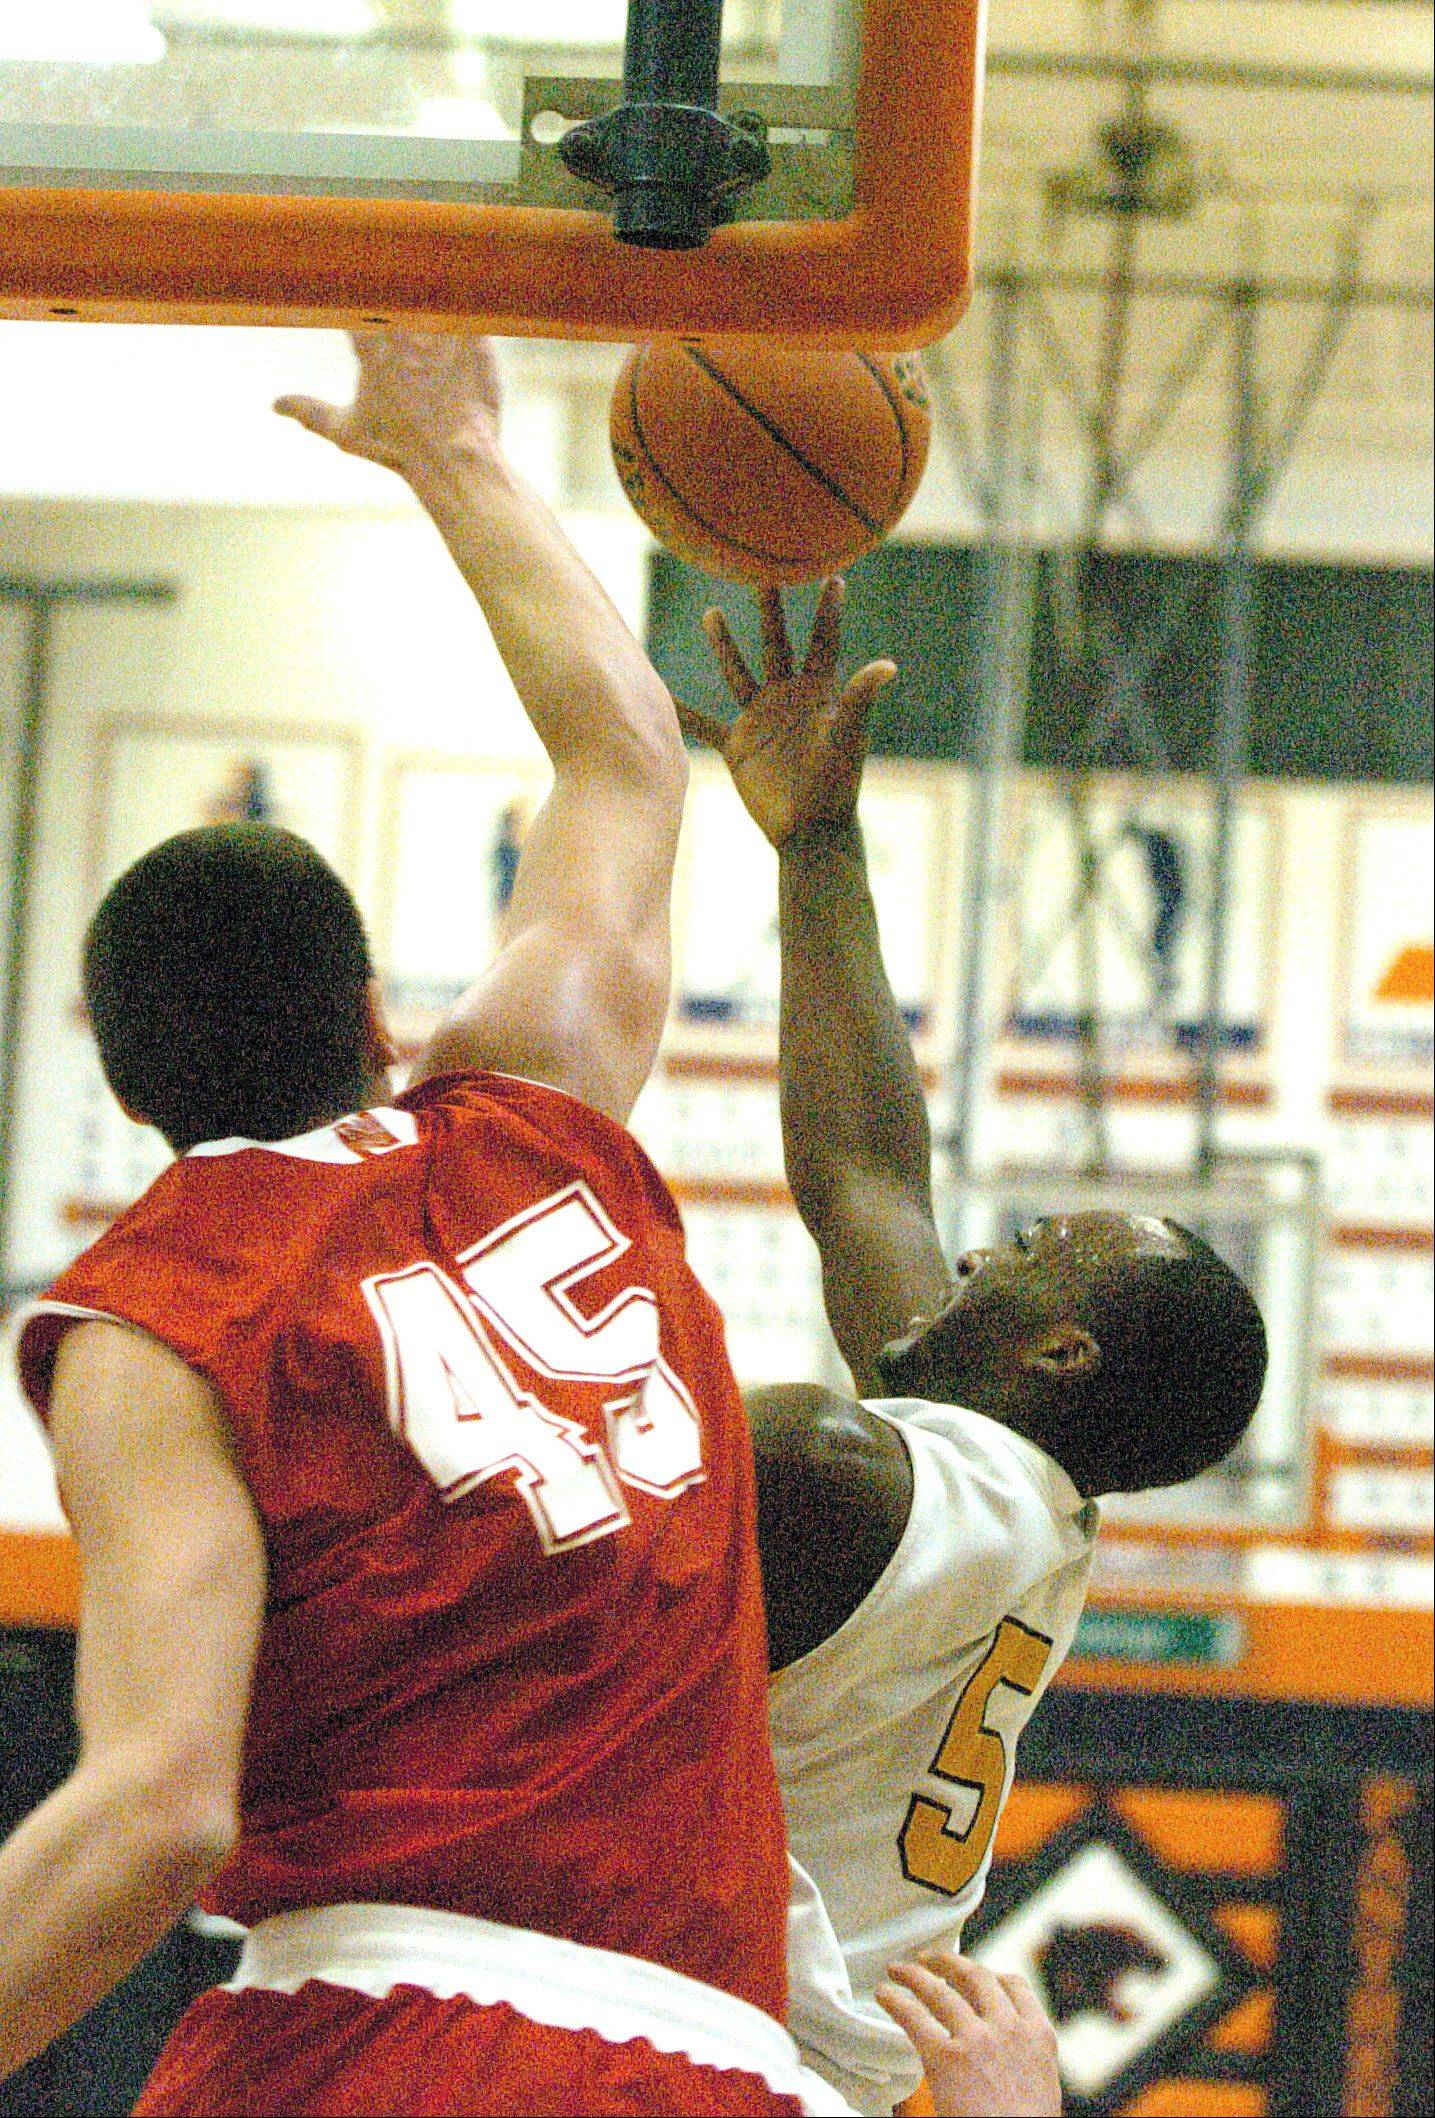 Nick Czarnowski of Naperville Central tries to stop Trayvond Taylor of Metea during the Metea Valley vs. Naperville Central boys basketball game at Hoops for Healing Tournament in Oswego Wednesday.